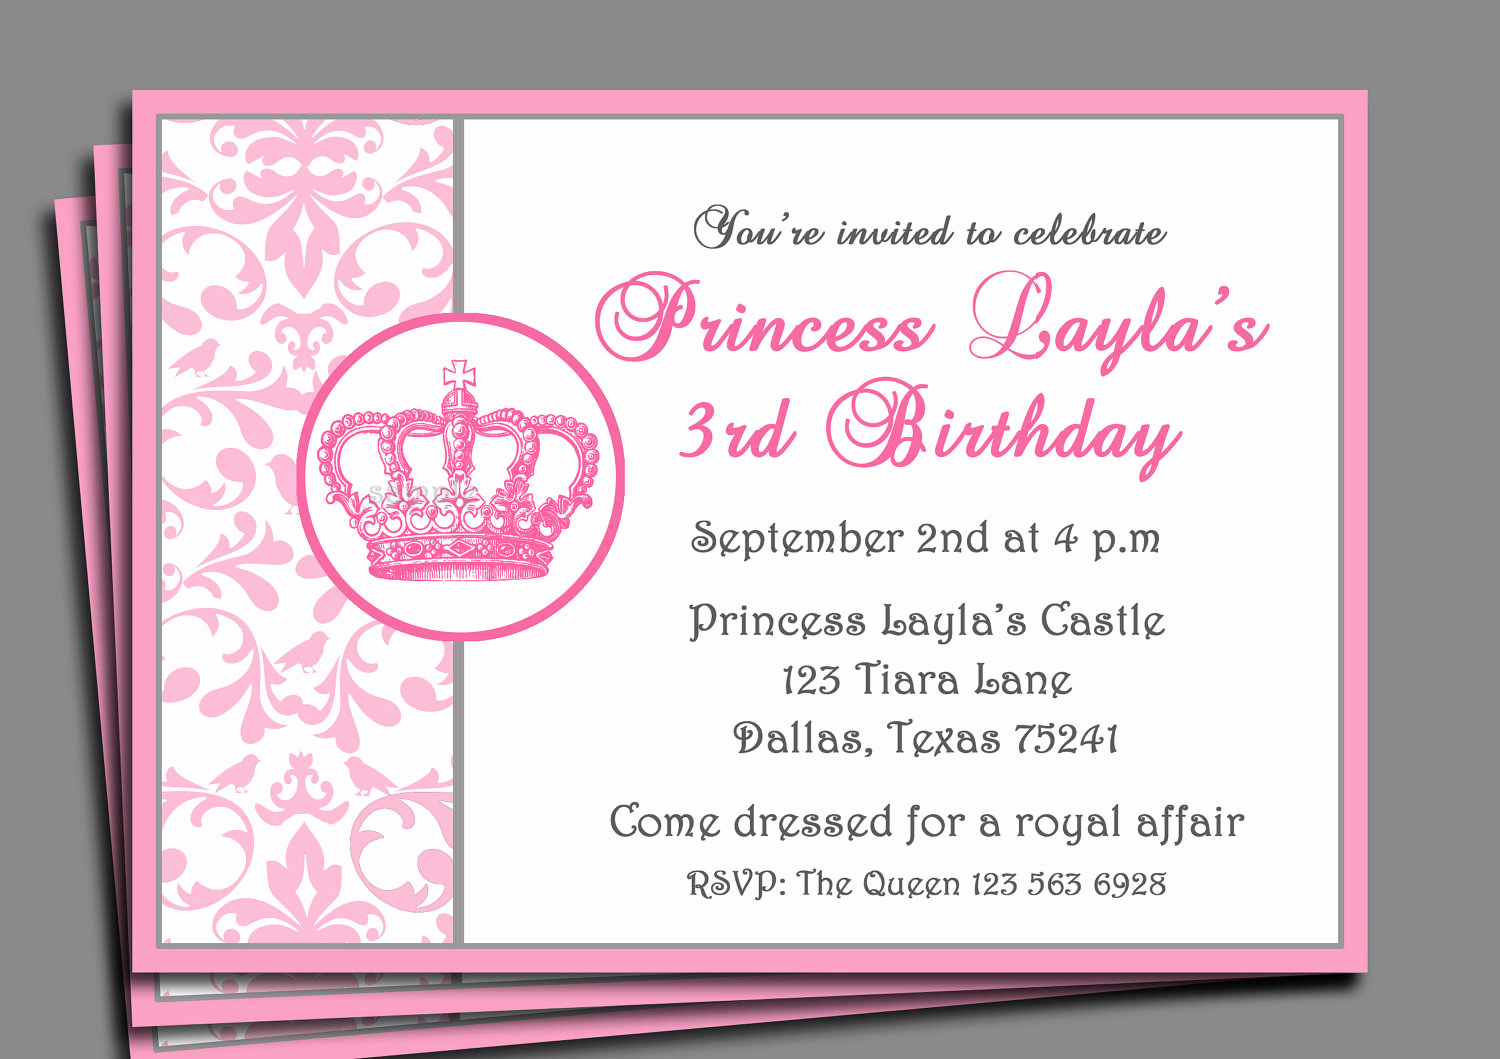 Princess Party Invitation Wording Beautiful Princess Party Invitation Printable or Printed with Free